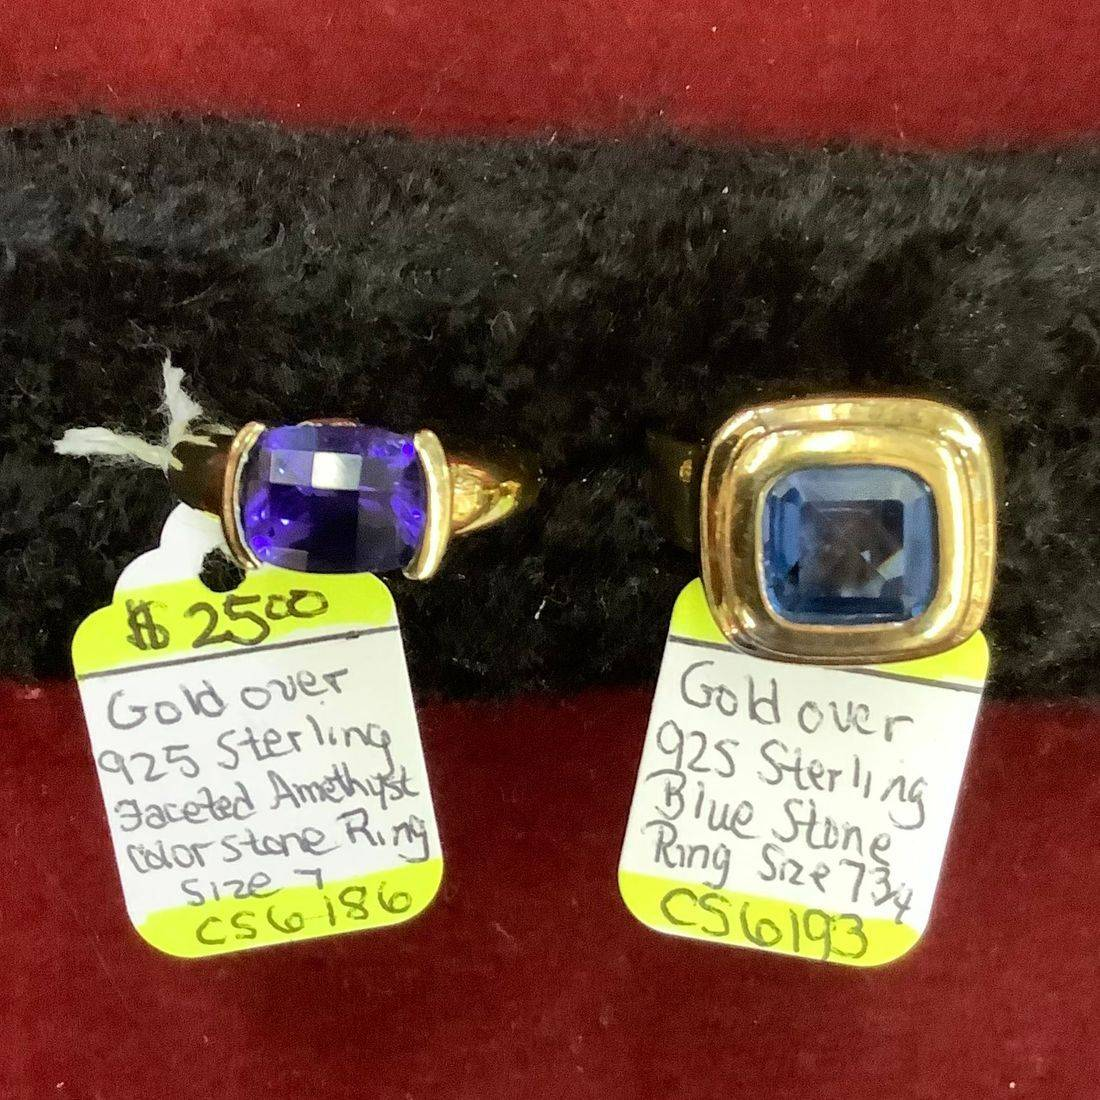 Gold Over 925 Sterling Faceted Amethyst size 7 Ring $25 , Gold Over 925 Sterling Blue Gem Stone size 7-3/4 Ring $25